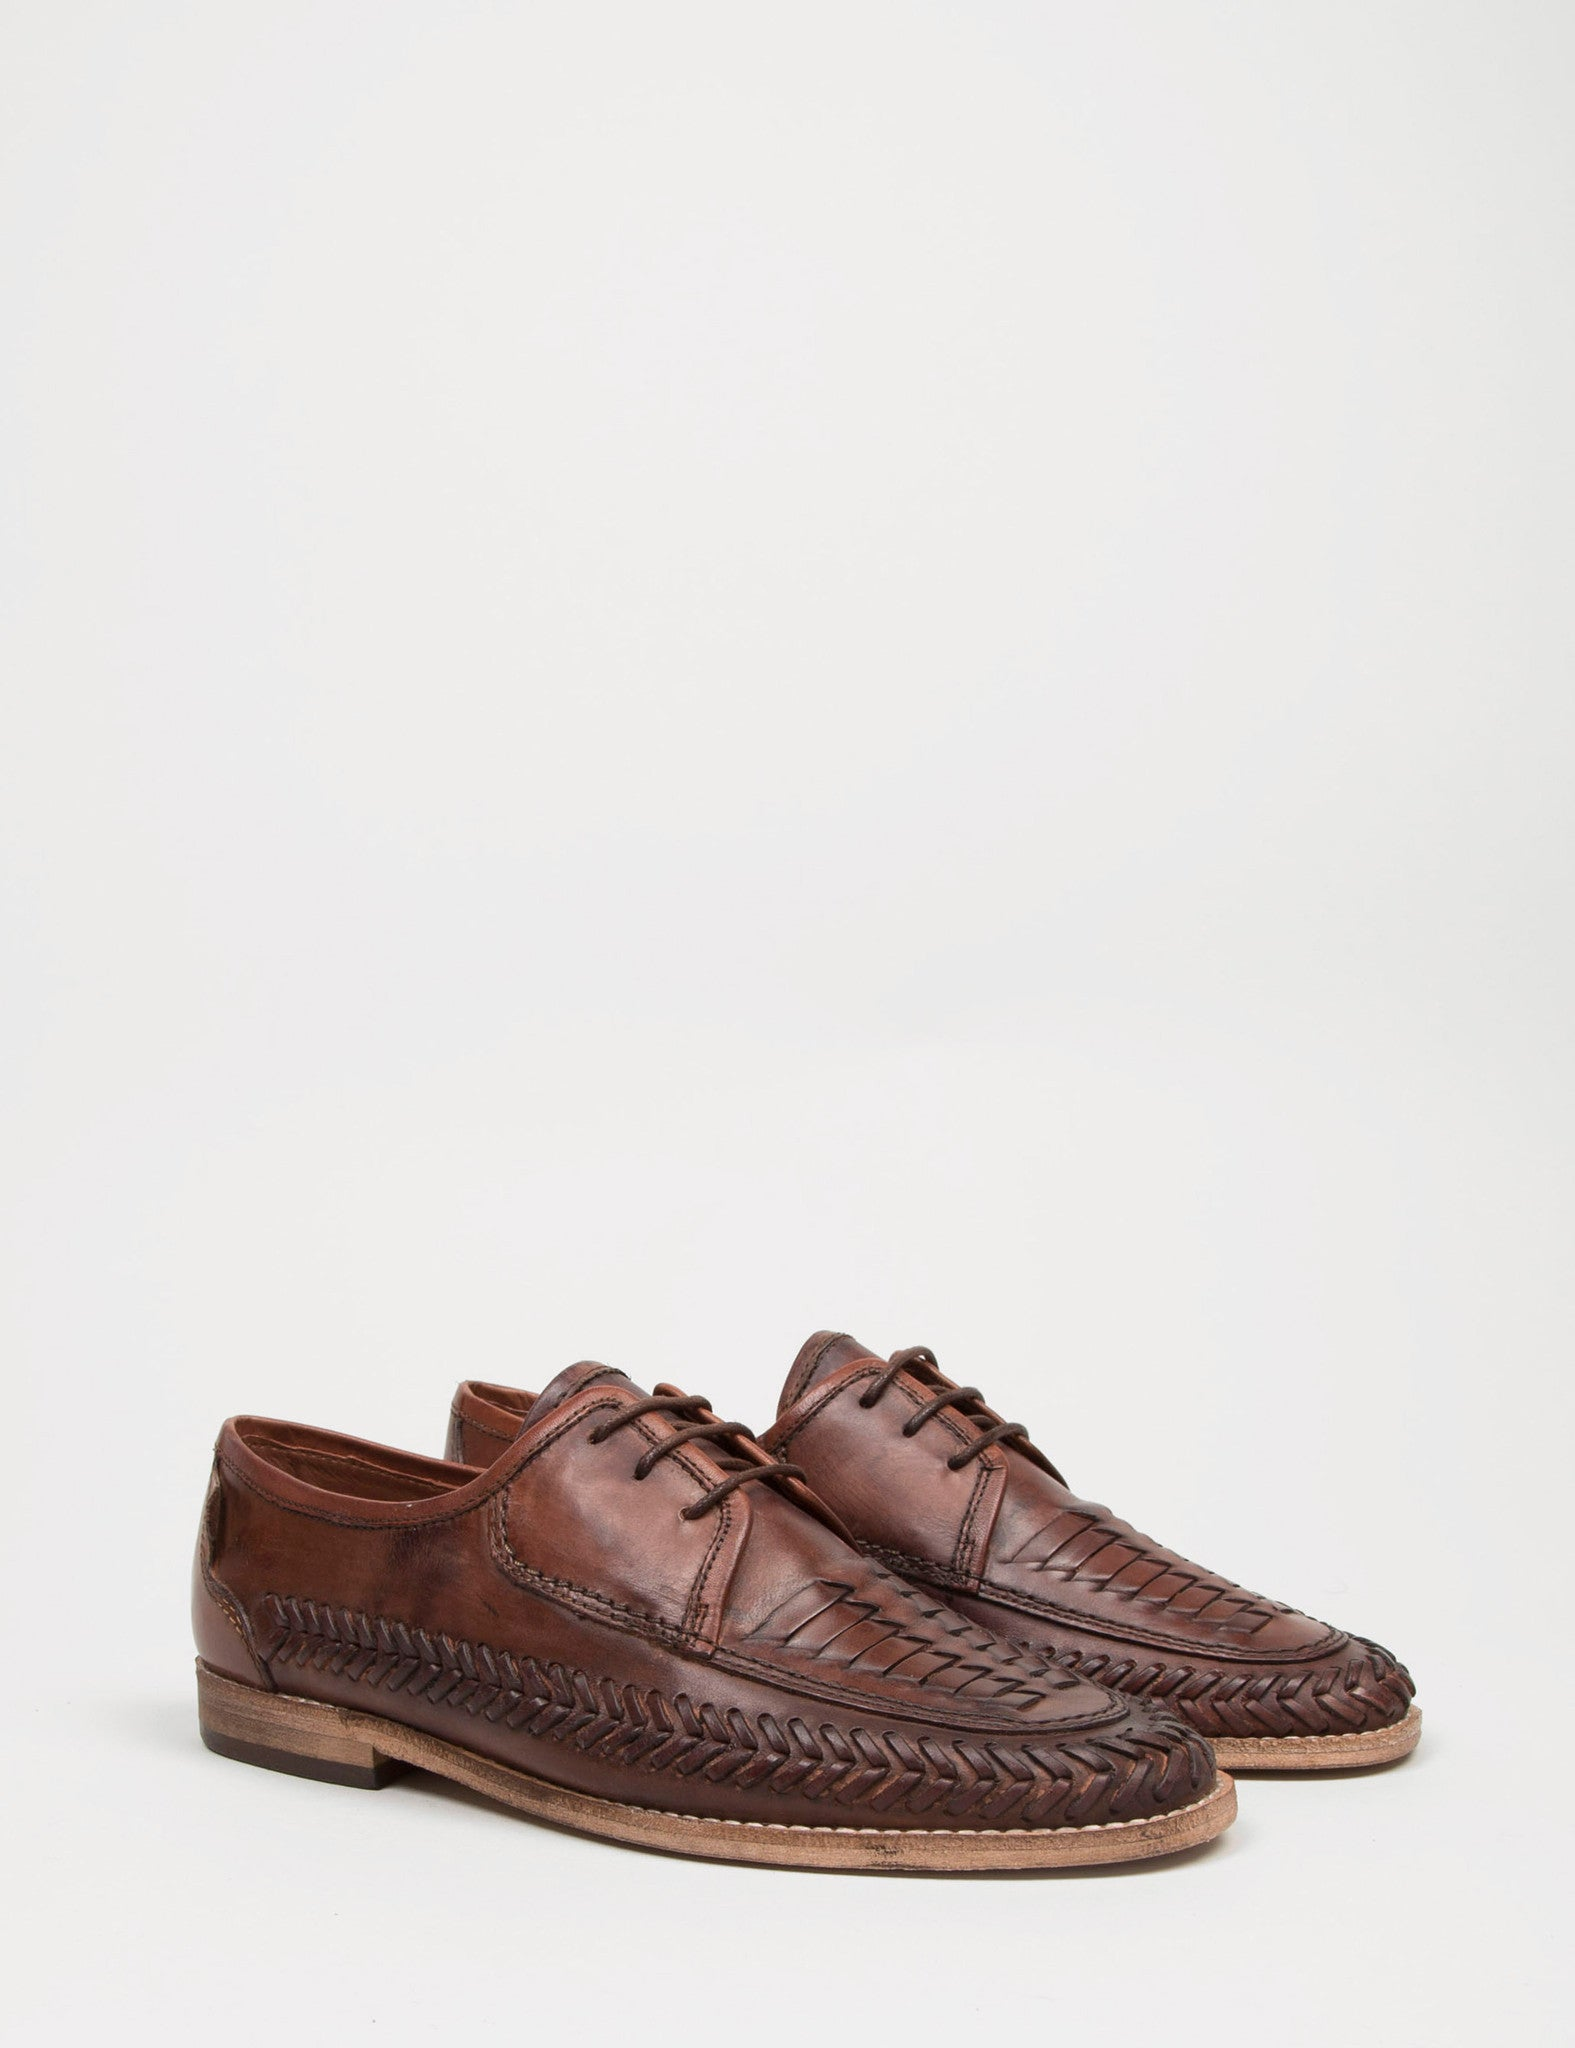 Hudson Anfa Calf Shoes - Cognac Brown